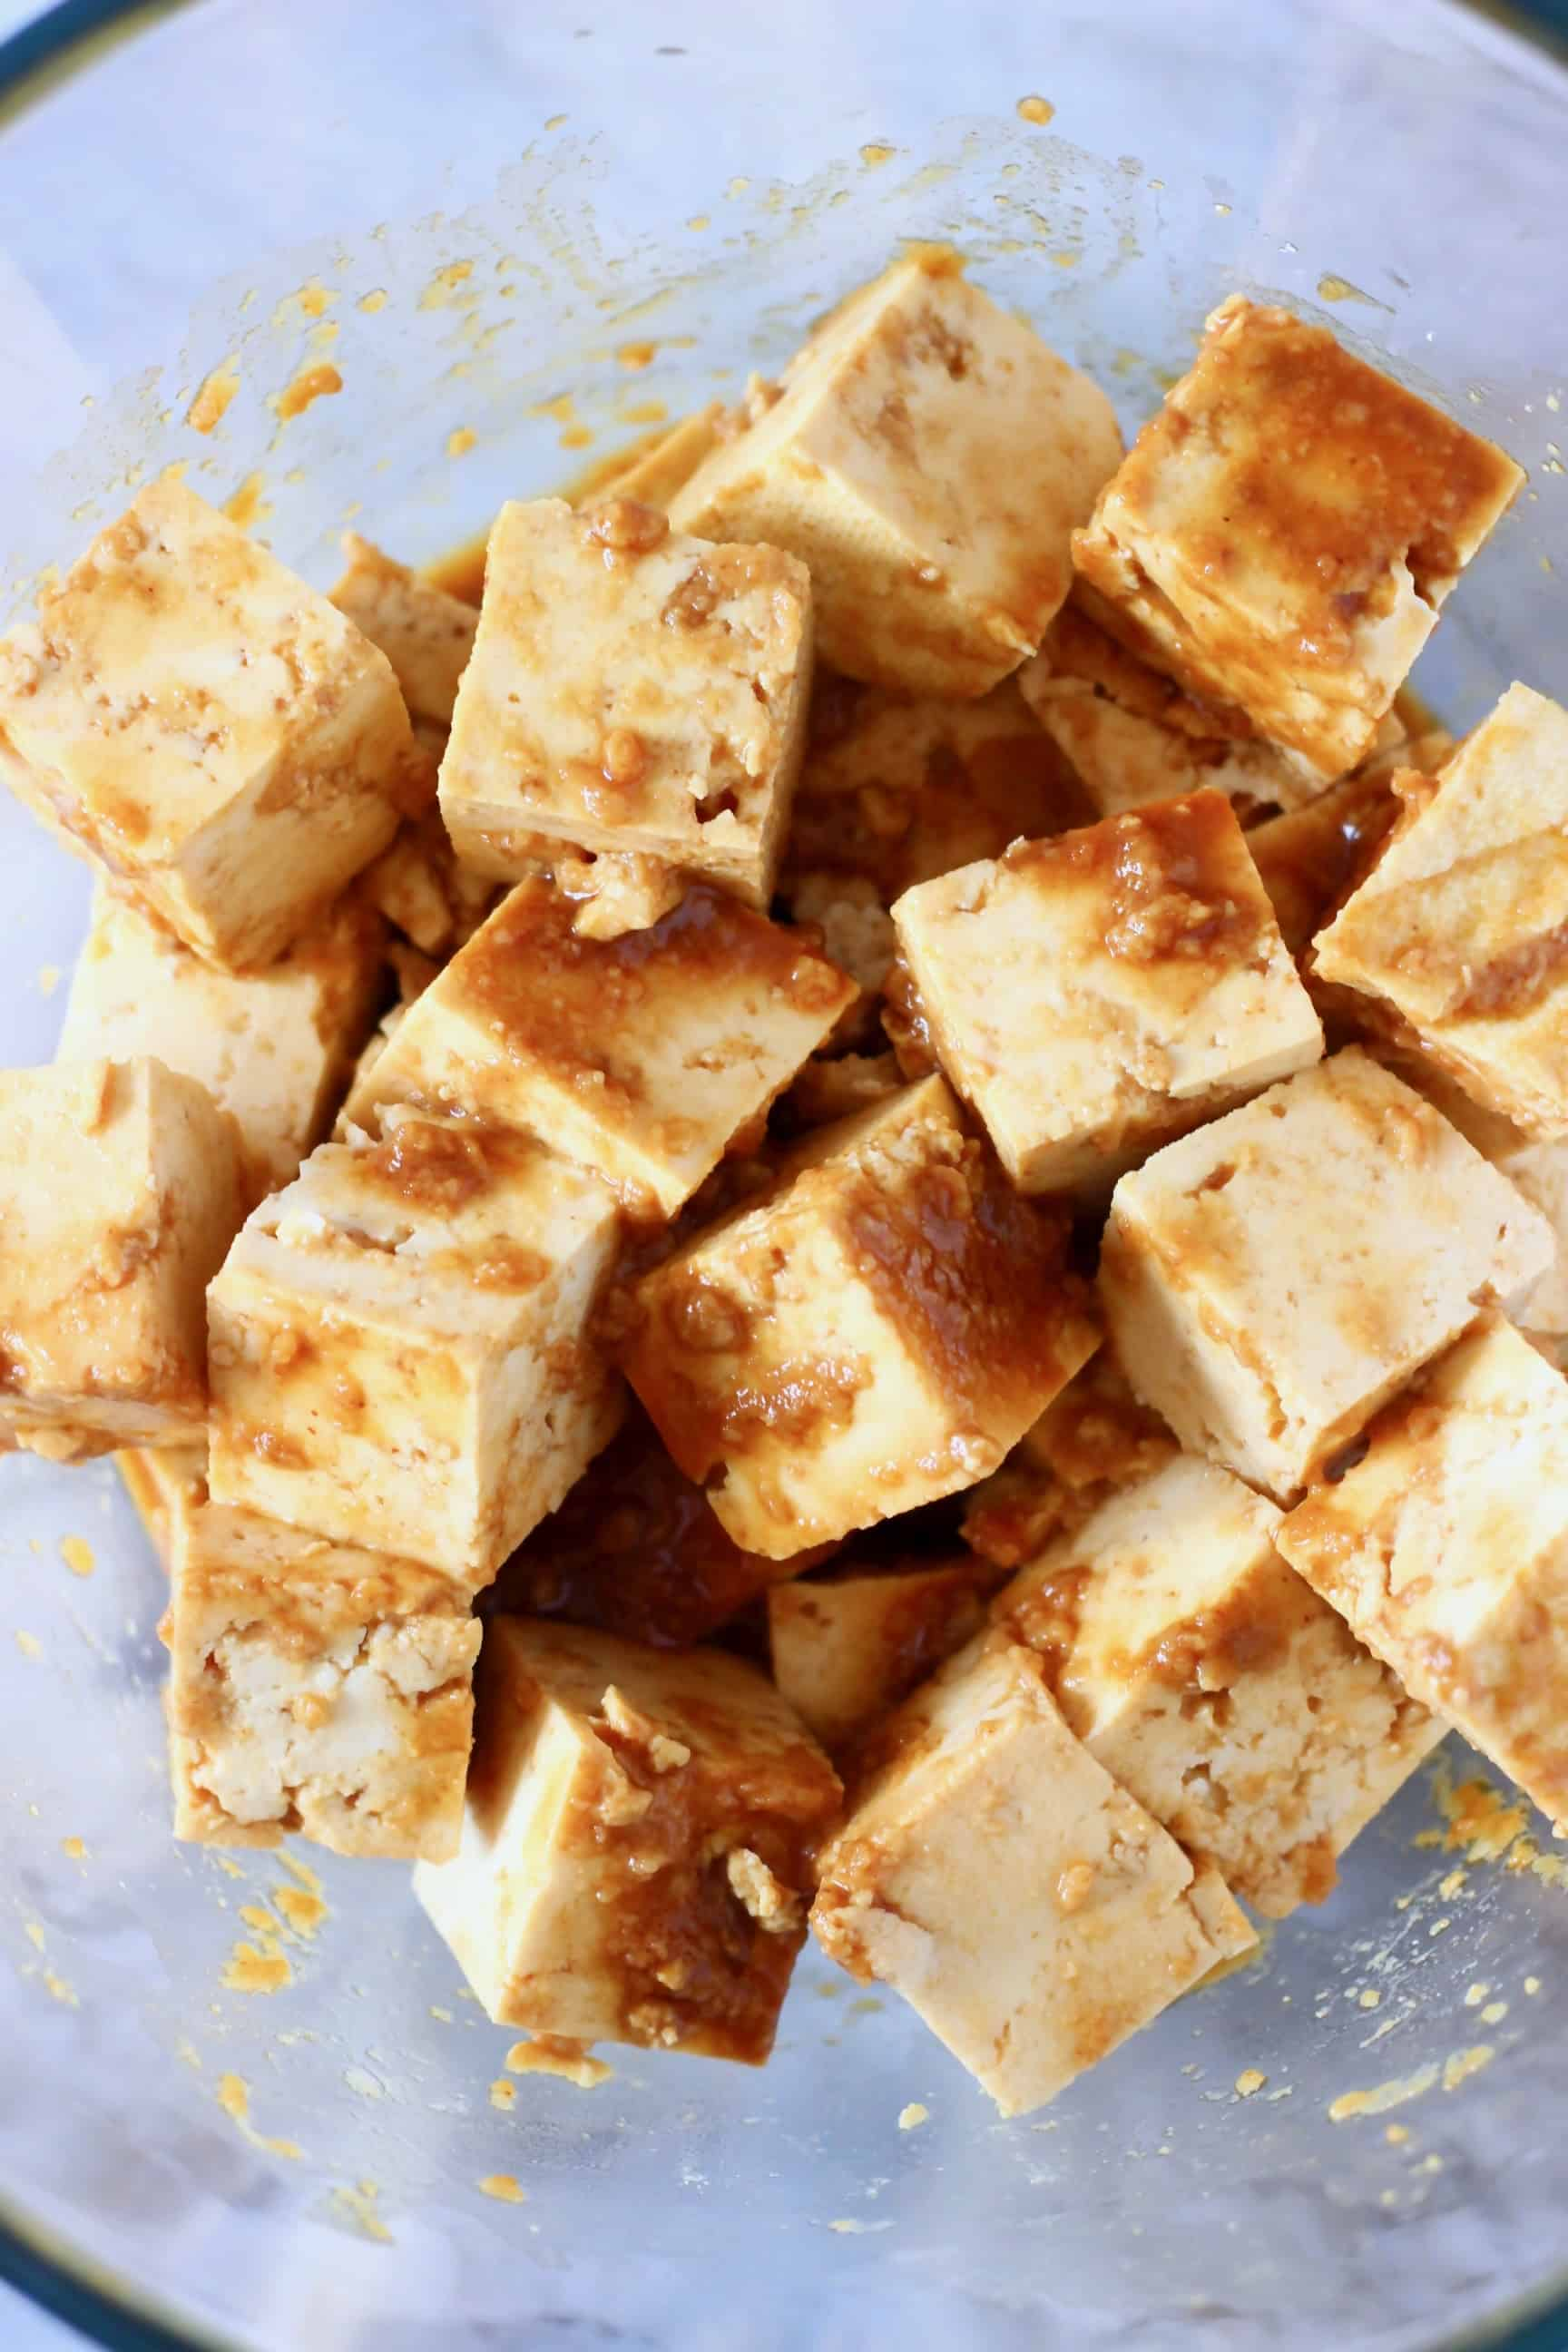 Cubes of tofu marinating in a peanut sauce in a glass bowl